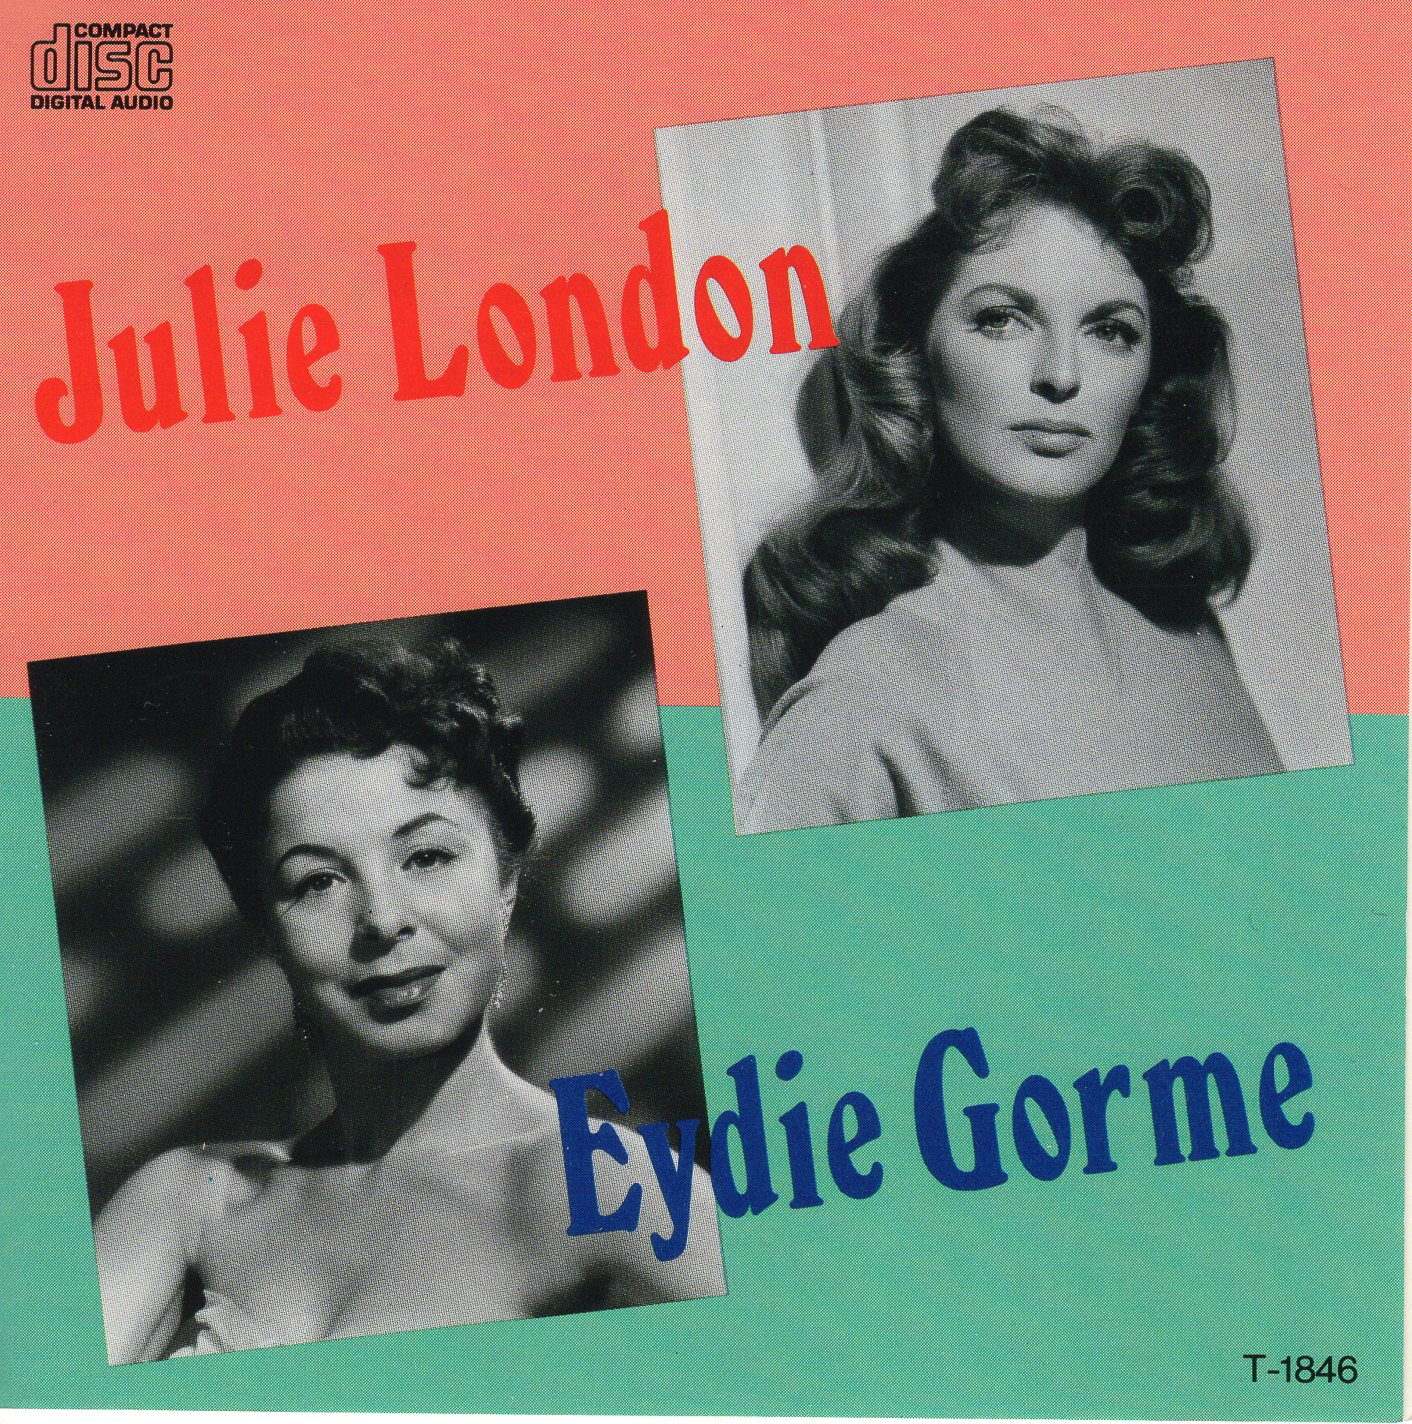 """Julie London, Eydie Gorme"" Eydie Gorme, Julie London"